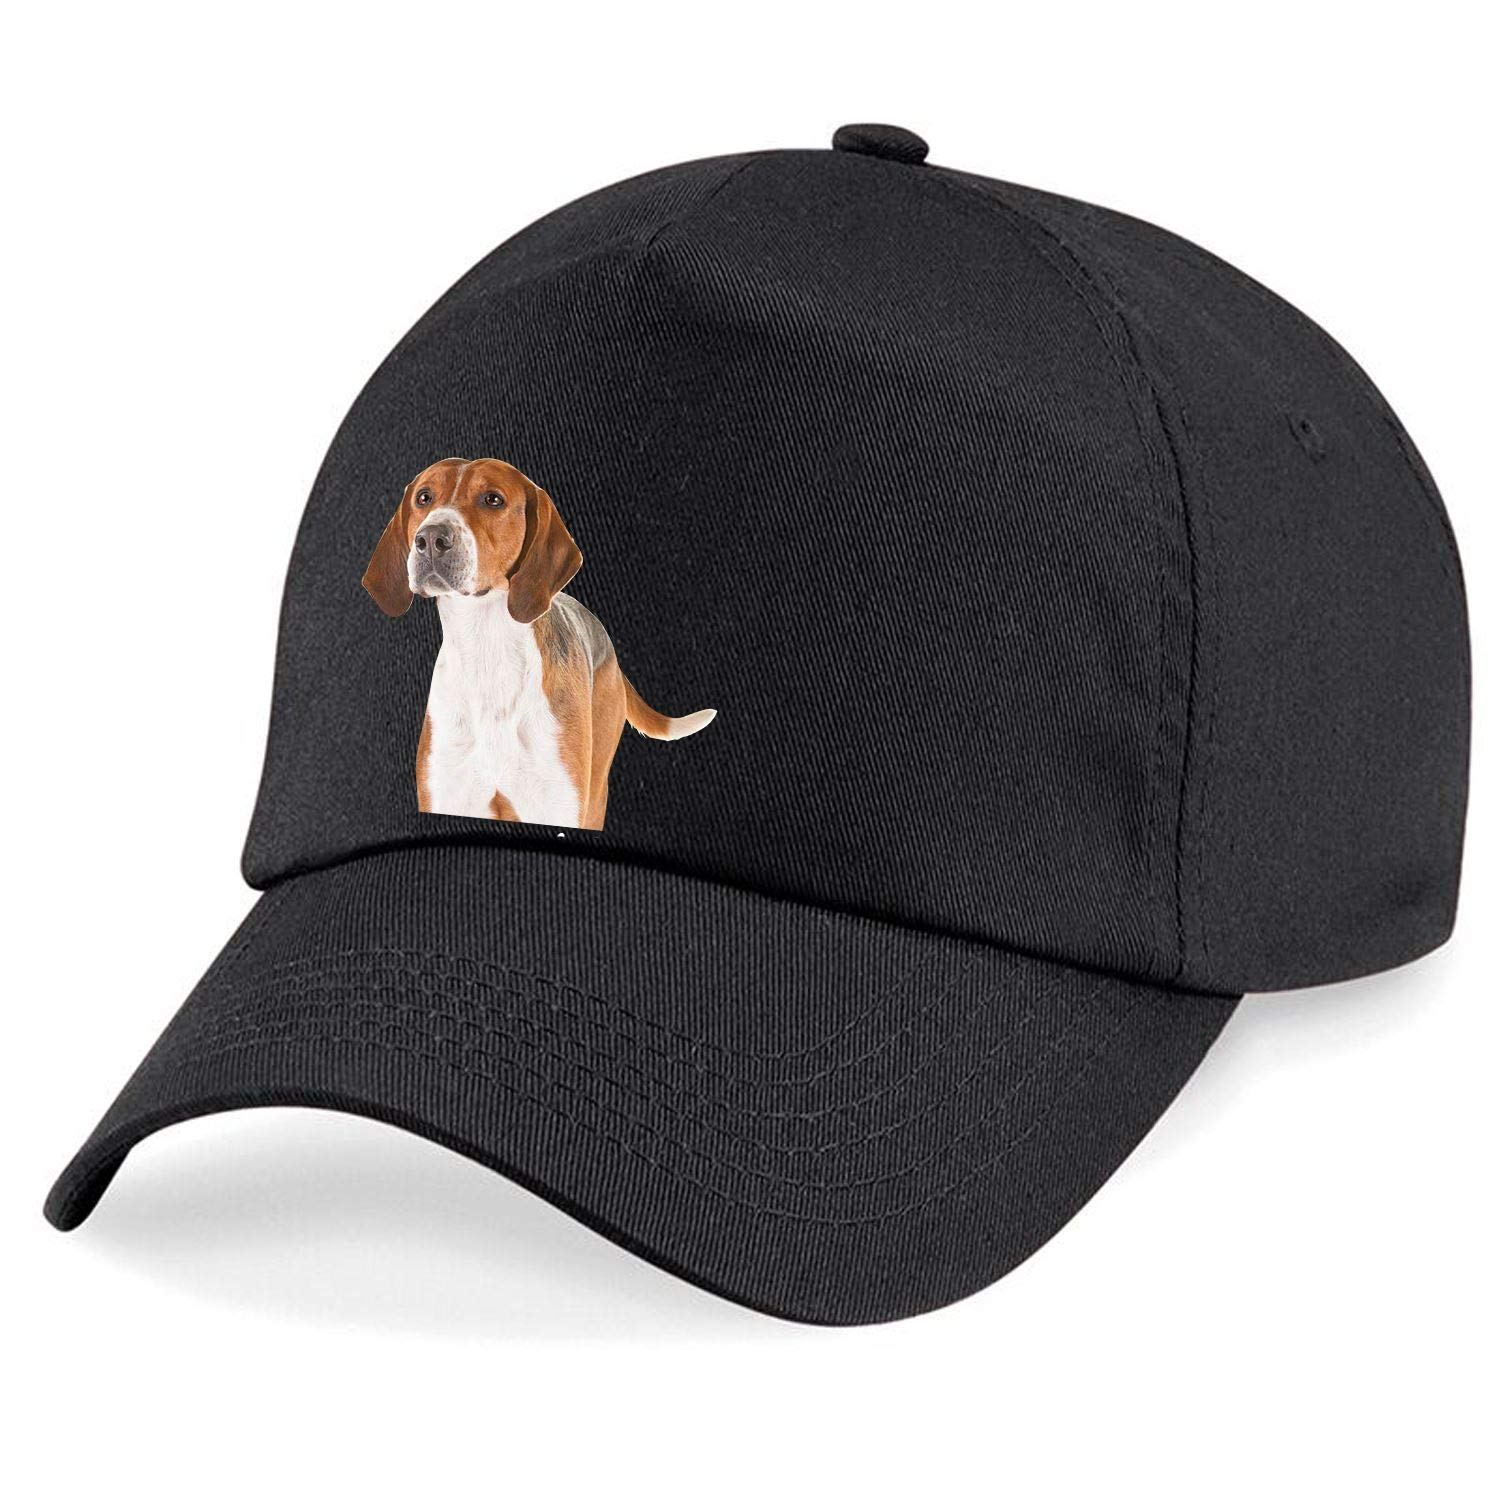 Taurus Clothing English Foxhound Dog Personalised Embroidered Cap Black